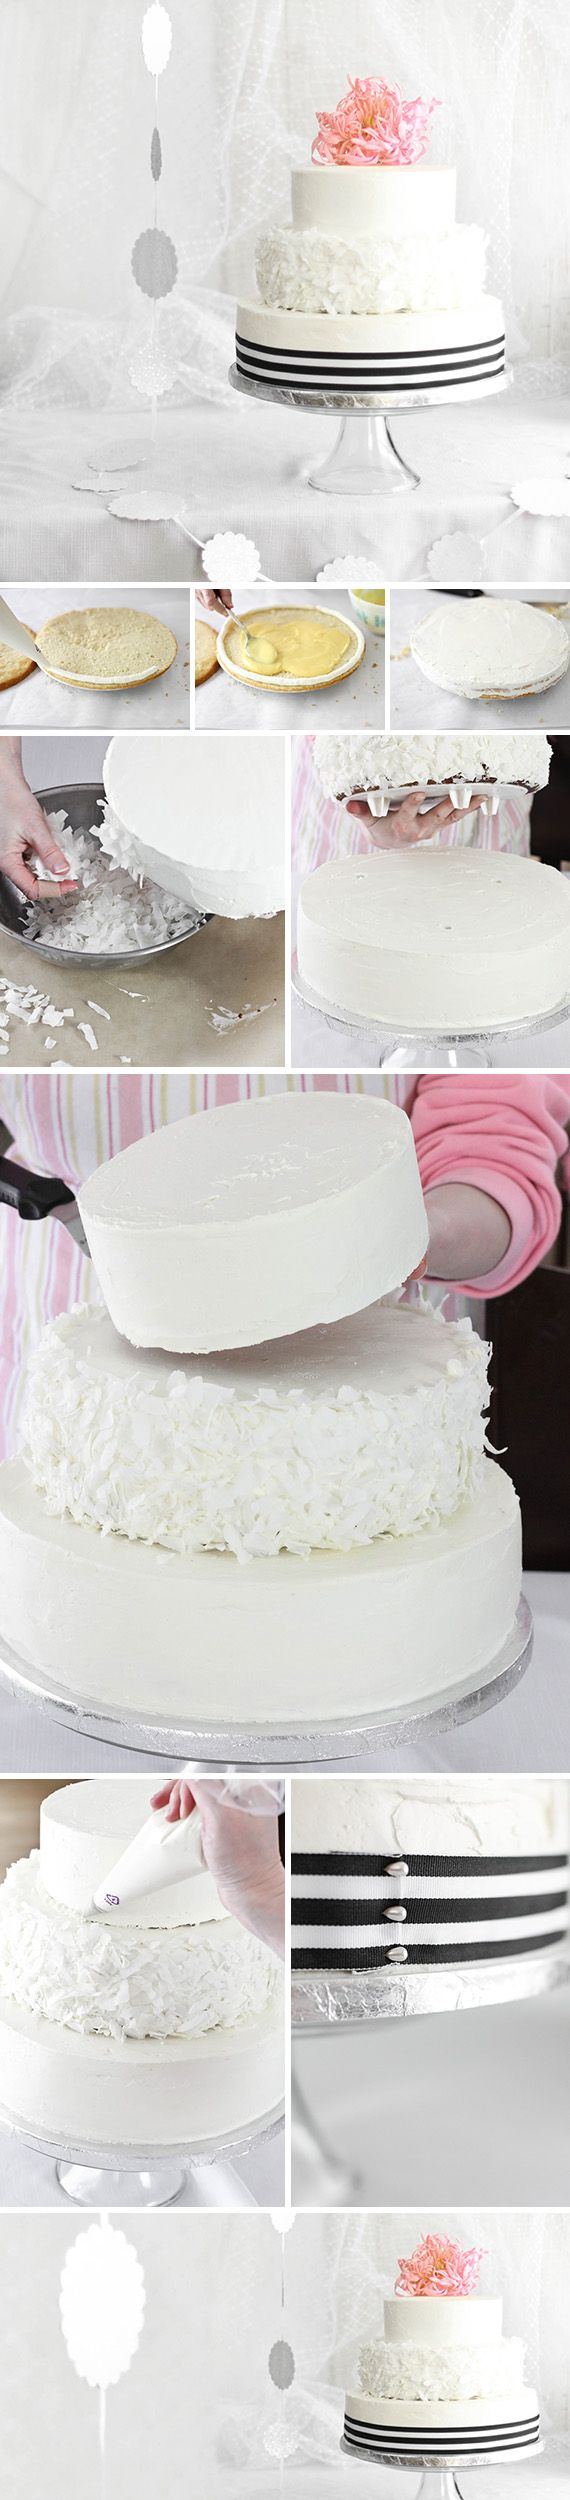 Making a wedding cake takes a good measure of bravery, but your guests will taste the love. Get started with this step-by-step, customizable recipe.